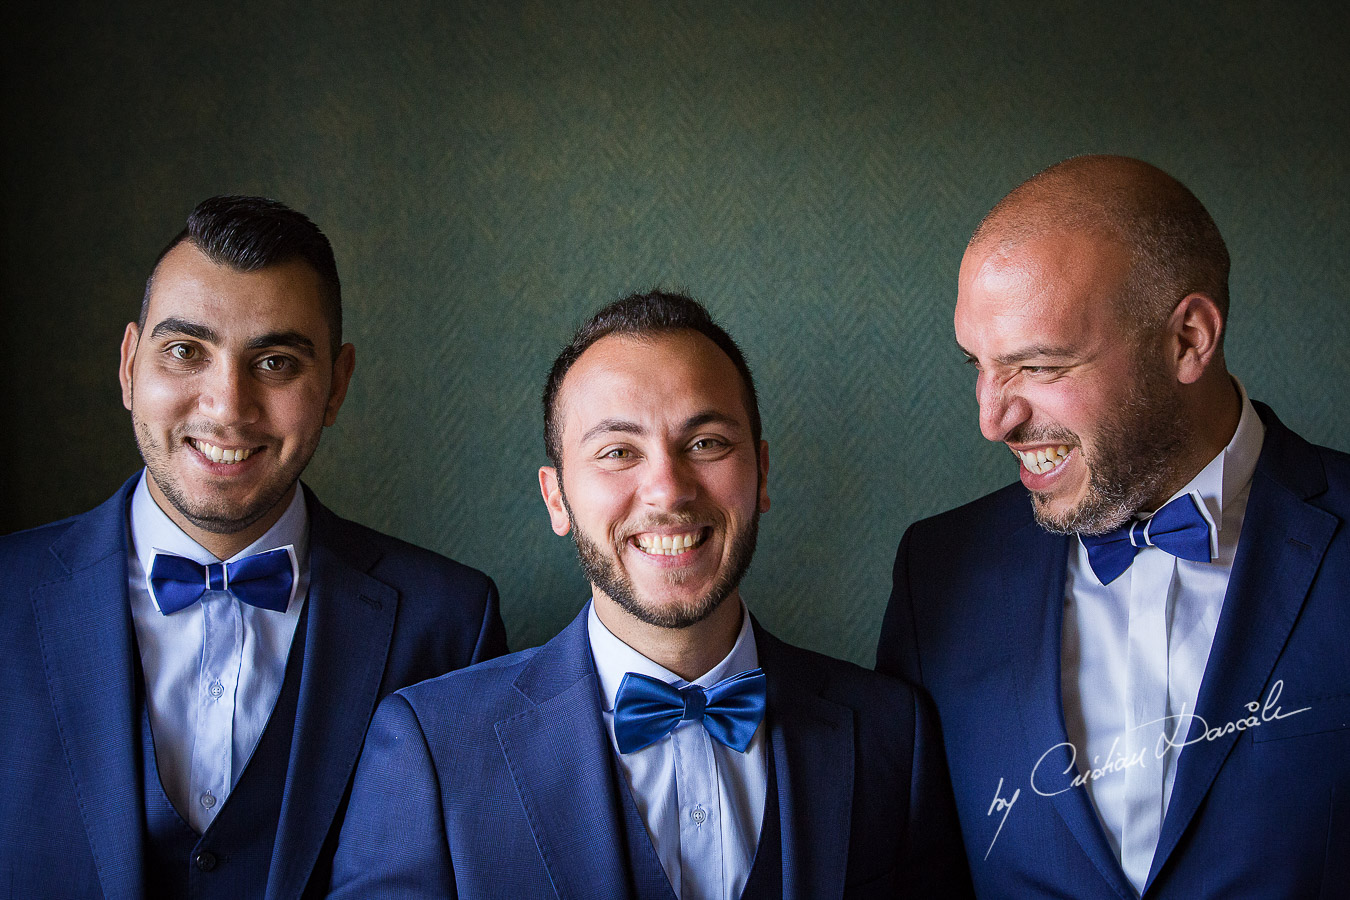 Groom and bestmen posing during getting ready as part of an Exclusive Wedding photography at the Grand Resort Limassol, captured by Cyprus Wedding Photographer Cristian Dascalu.